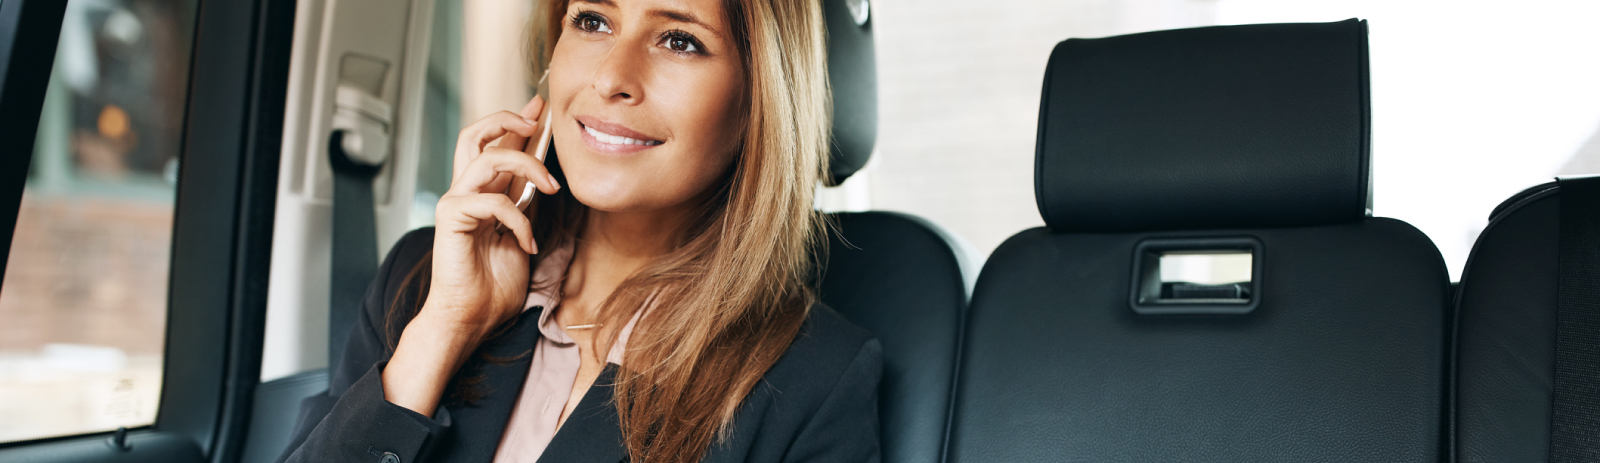 business woman in vehicle on her mobile phone